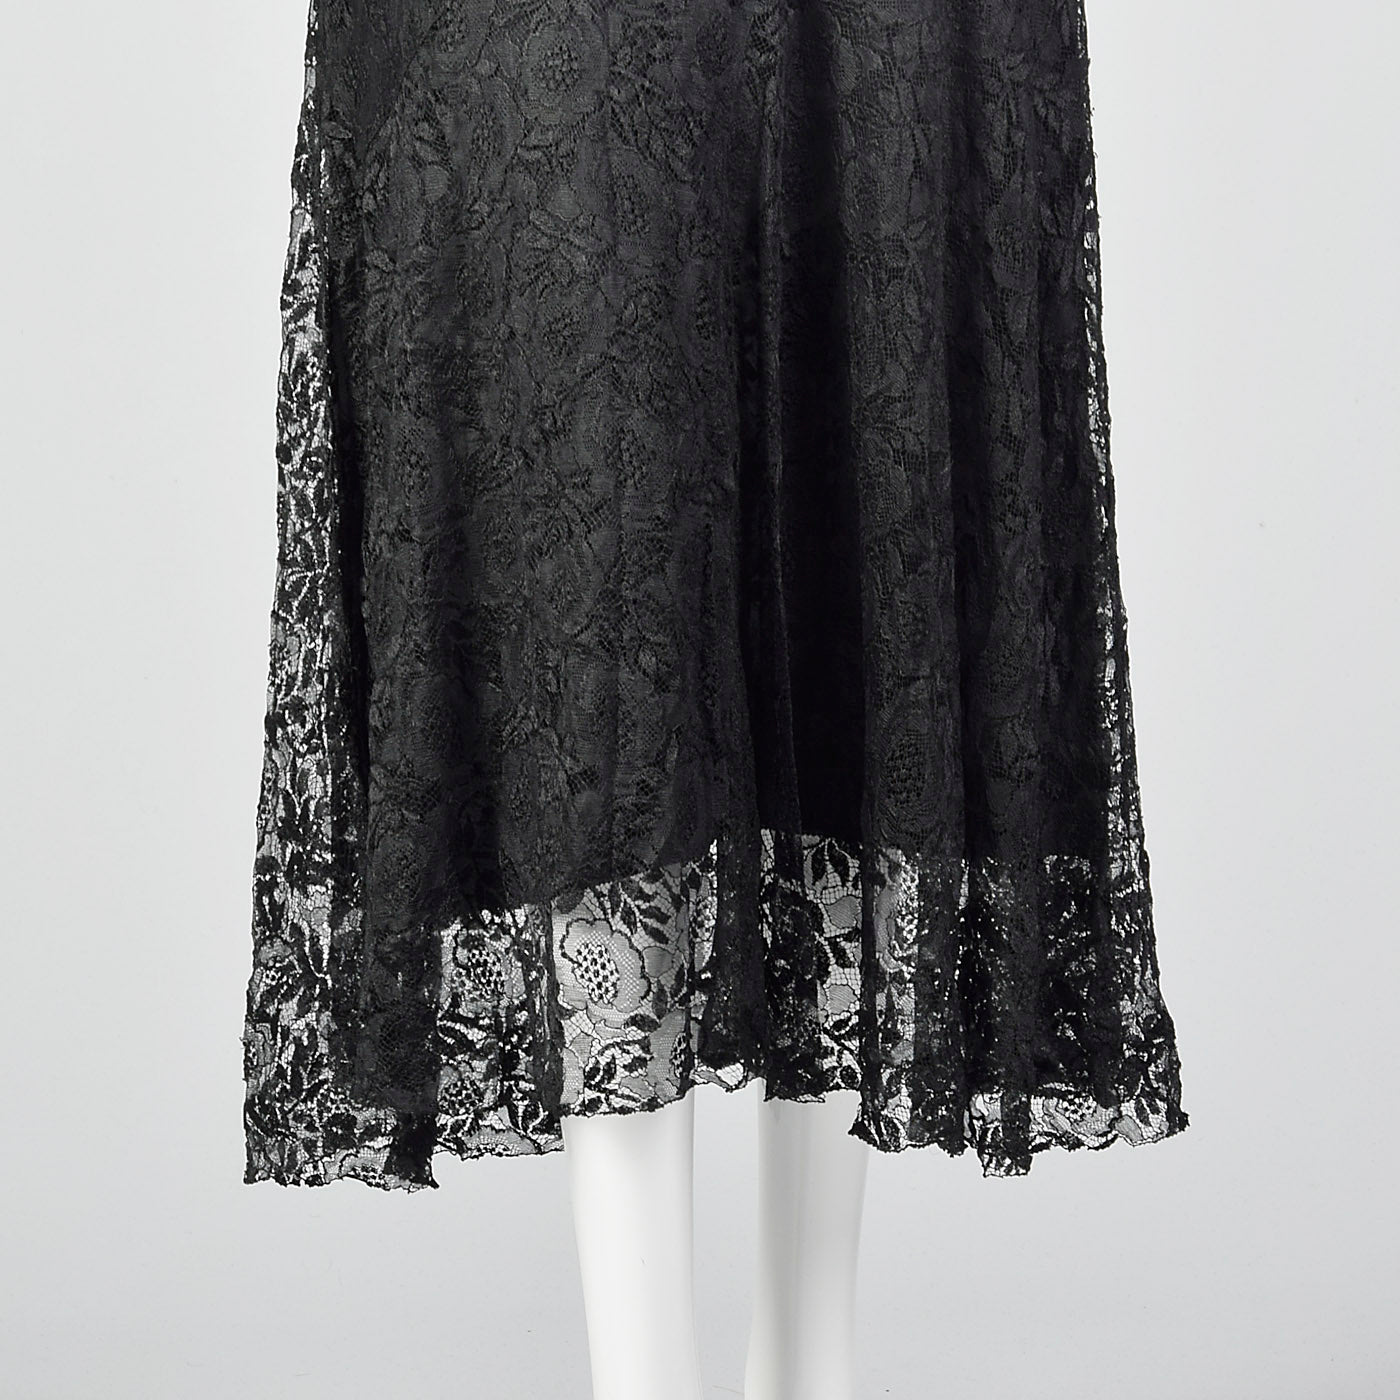 1930s Black Lace Dress with Sheer Flutter Sleeves